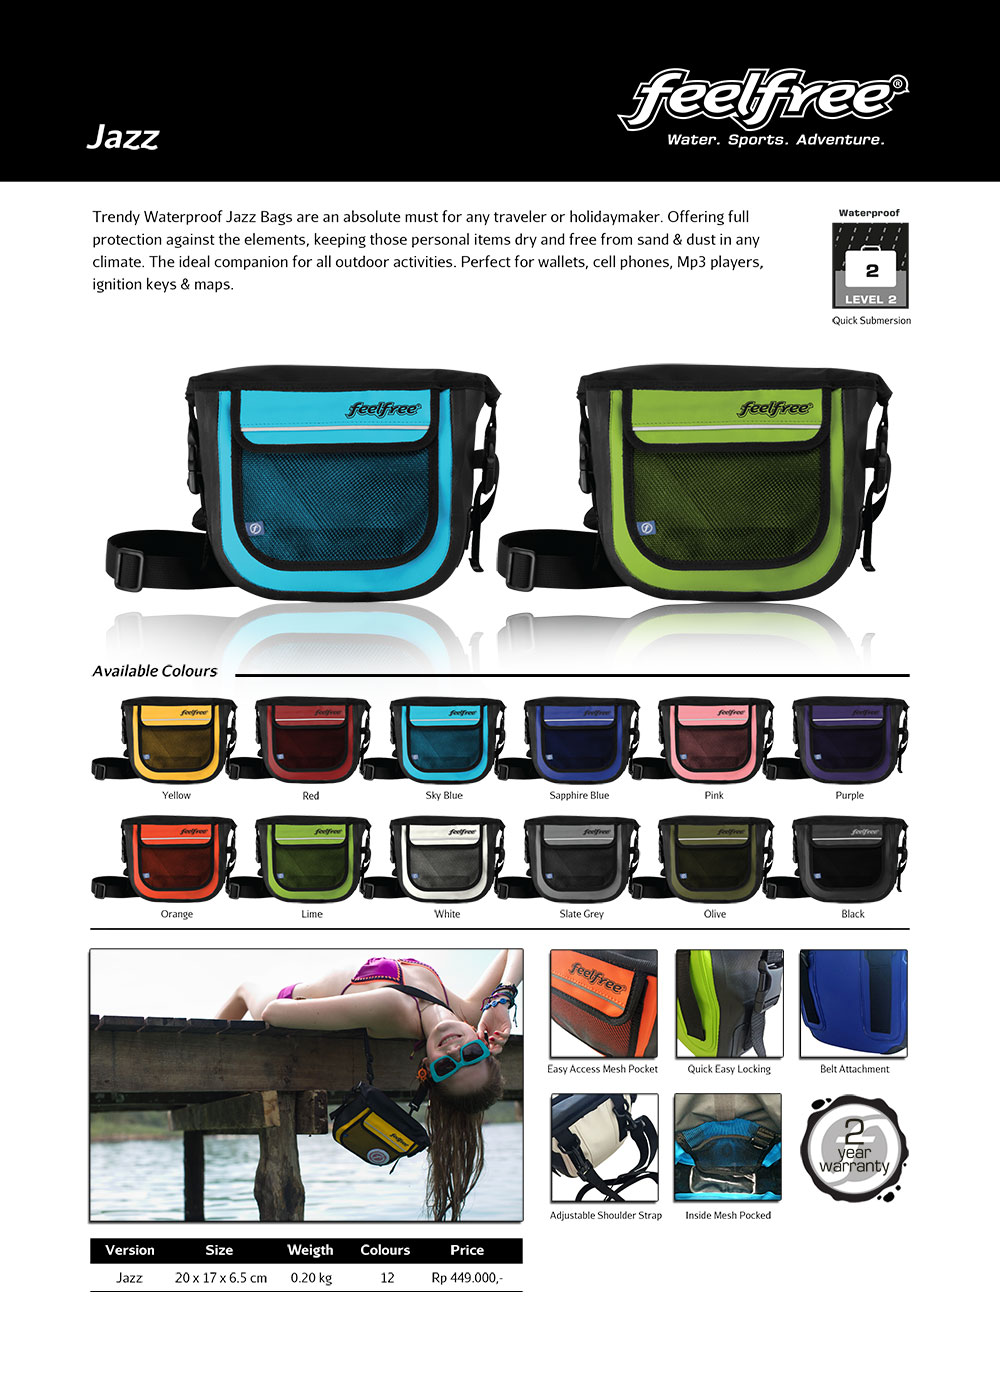 tas slempang waterproof feelfree jazz katalog tas kamera. Black Bedroom Furniture Sets. Home Design Ideas